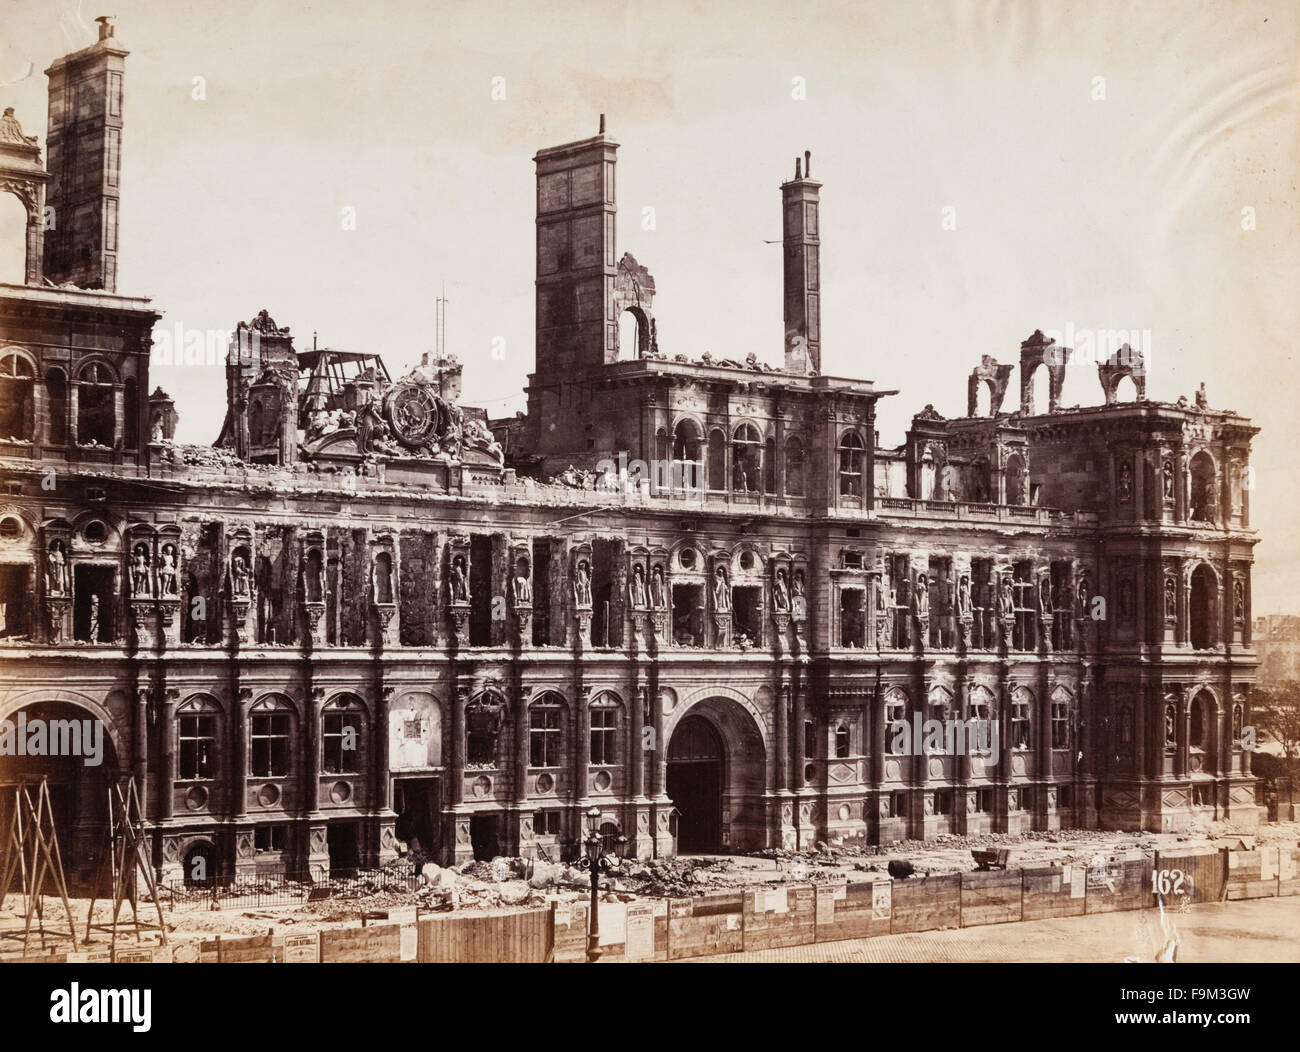 The ruins of the Hôtel de Ville (City Hall), Paris, France, in September 1871. The building was destroyed by - Stock Image